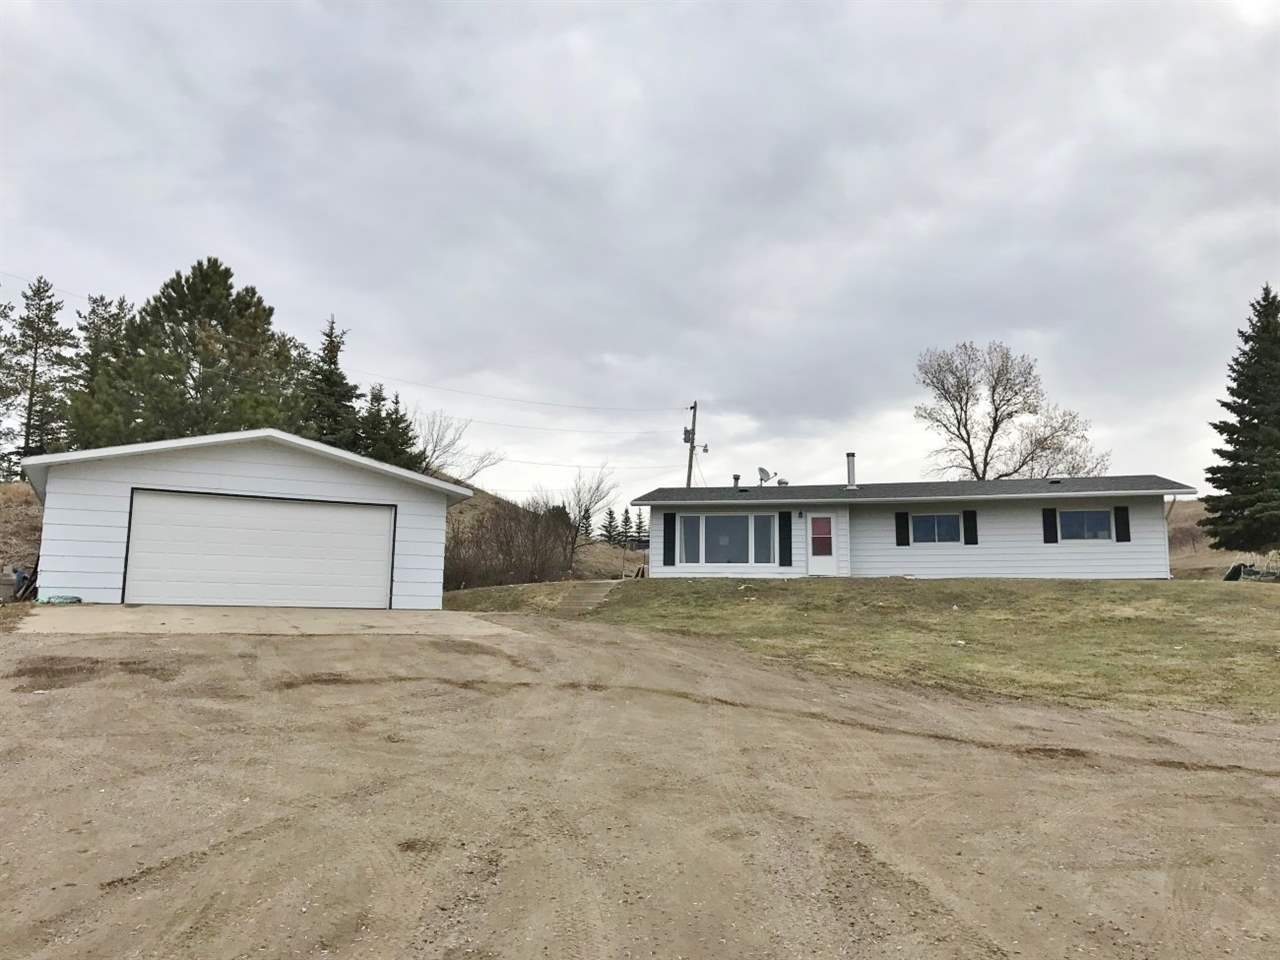 8020 County Rd. 15 W, Minot, ND 58703